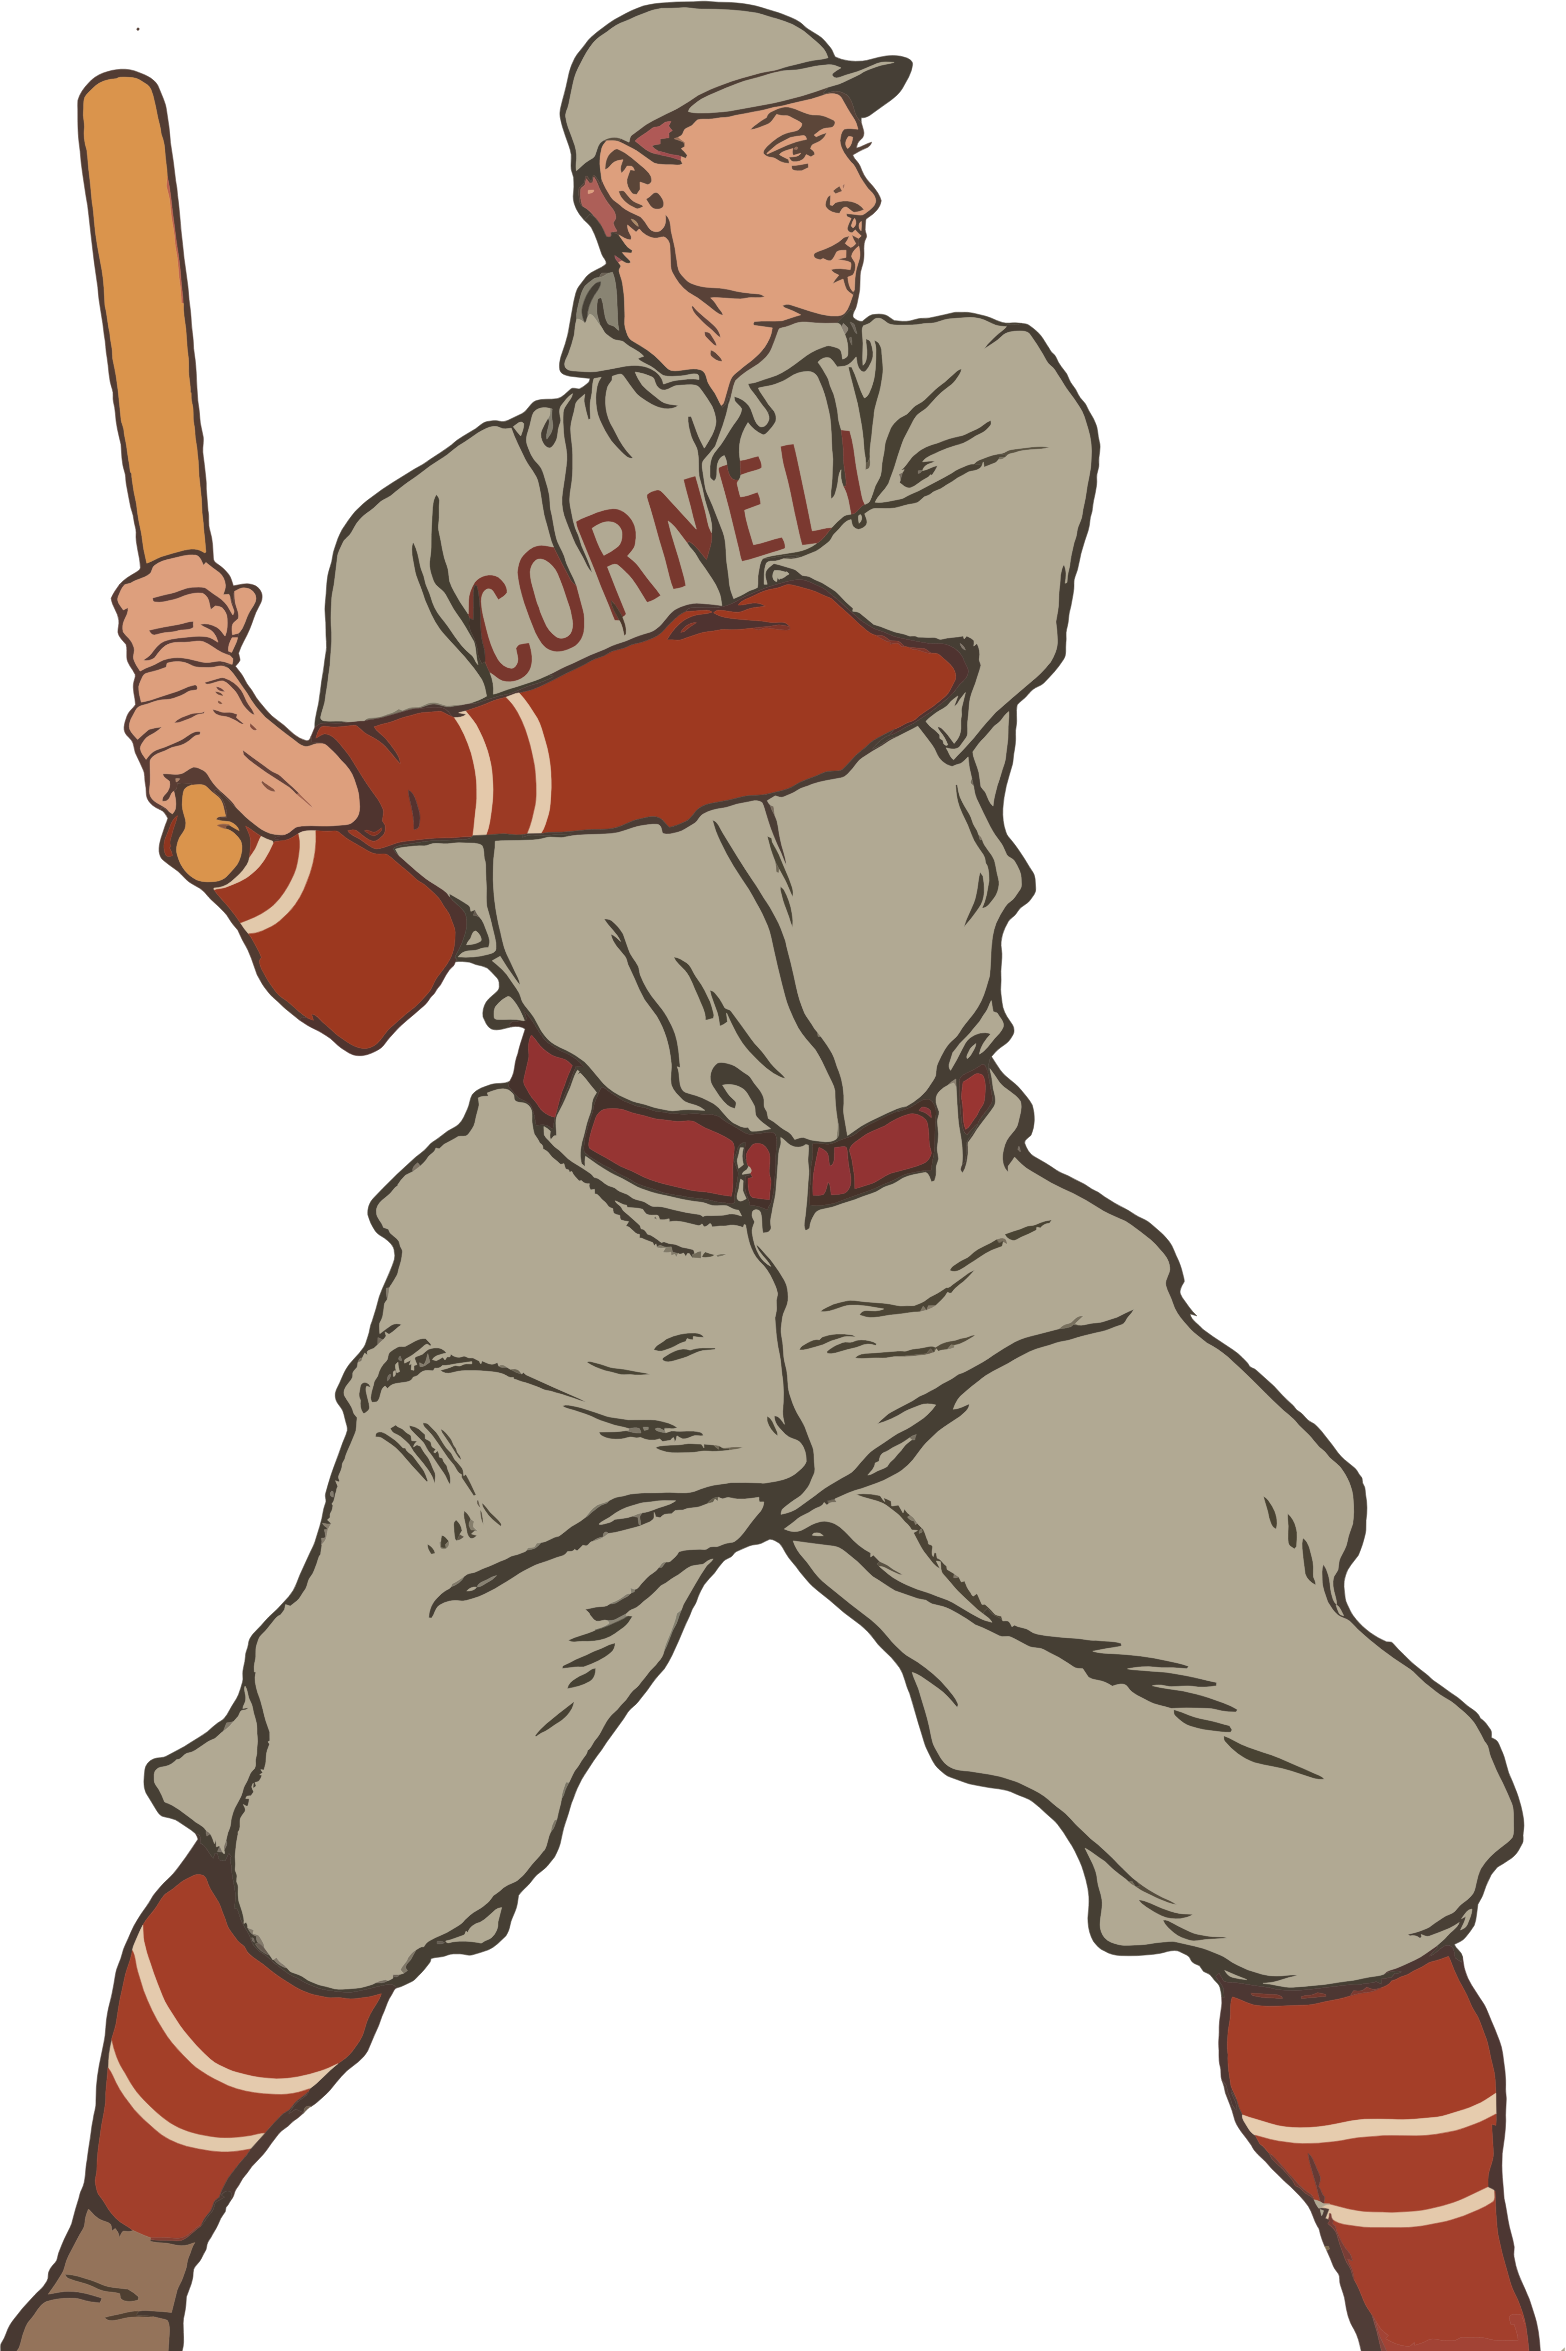 Clipart - Vintage Baseball Player